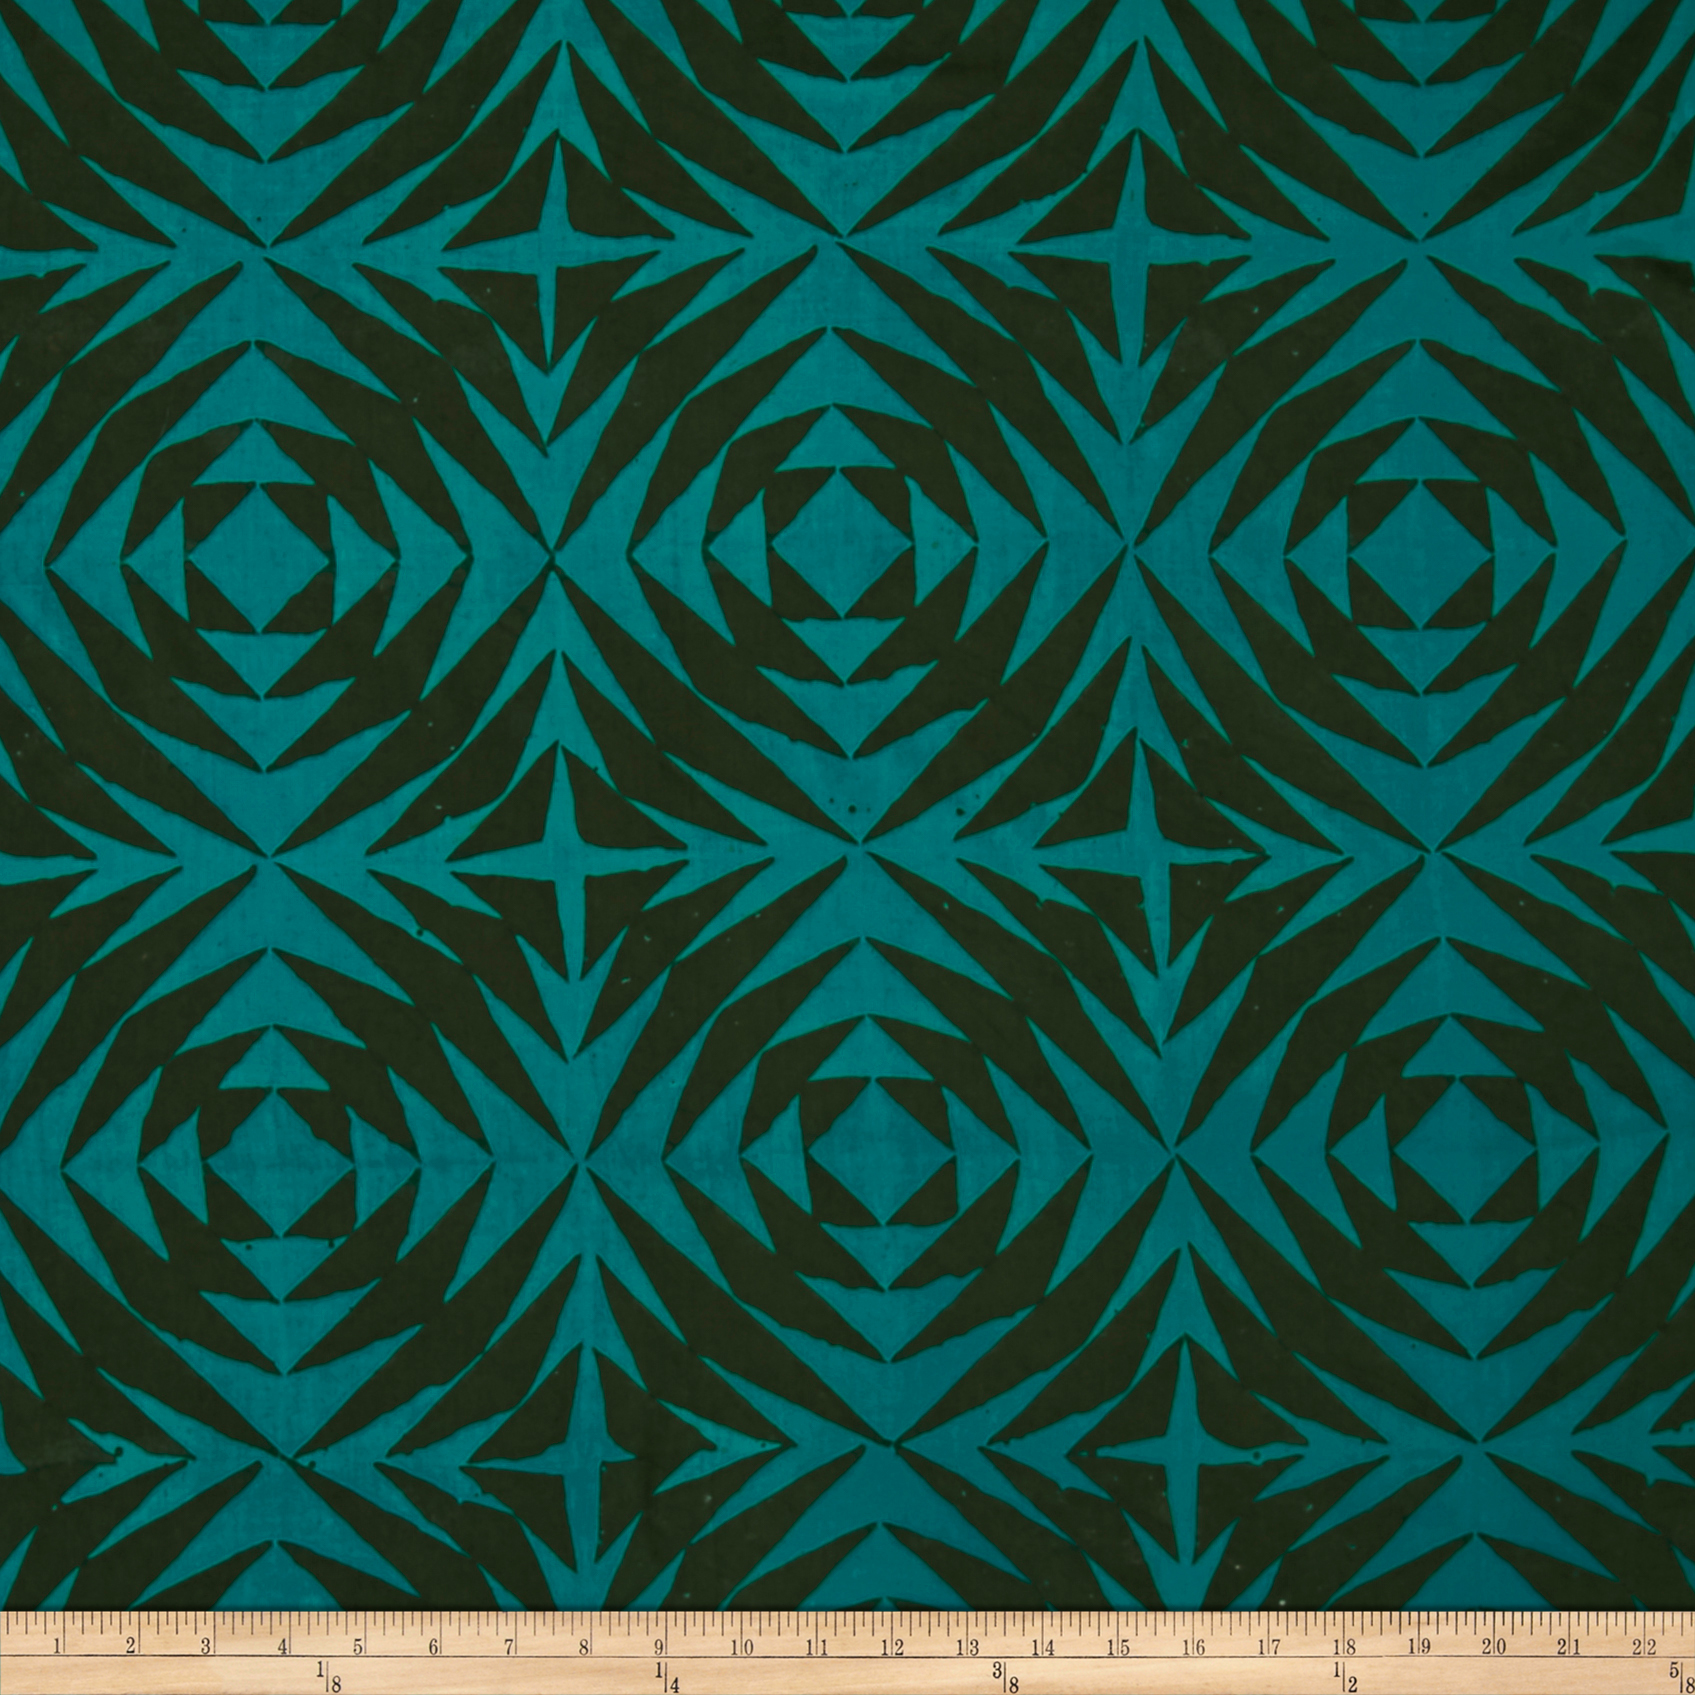 Image of Alison Glass Handcrafted Patchwork Batik Pineapple Lagoon Teal Fabric